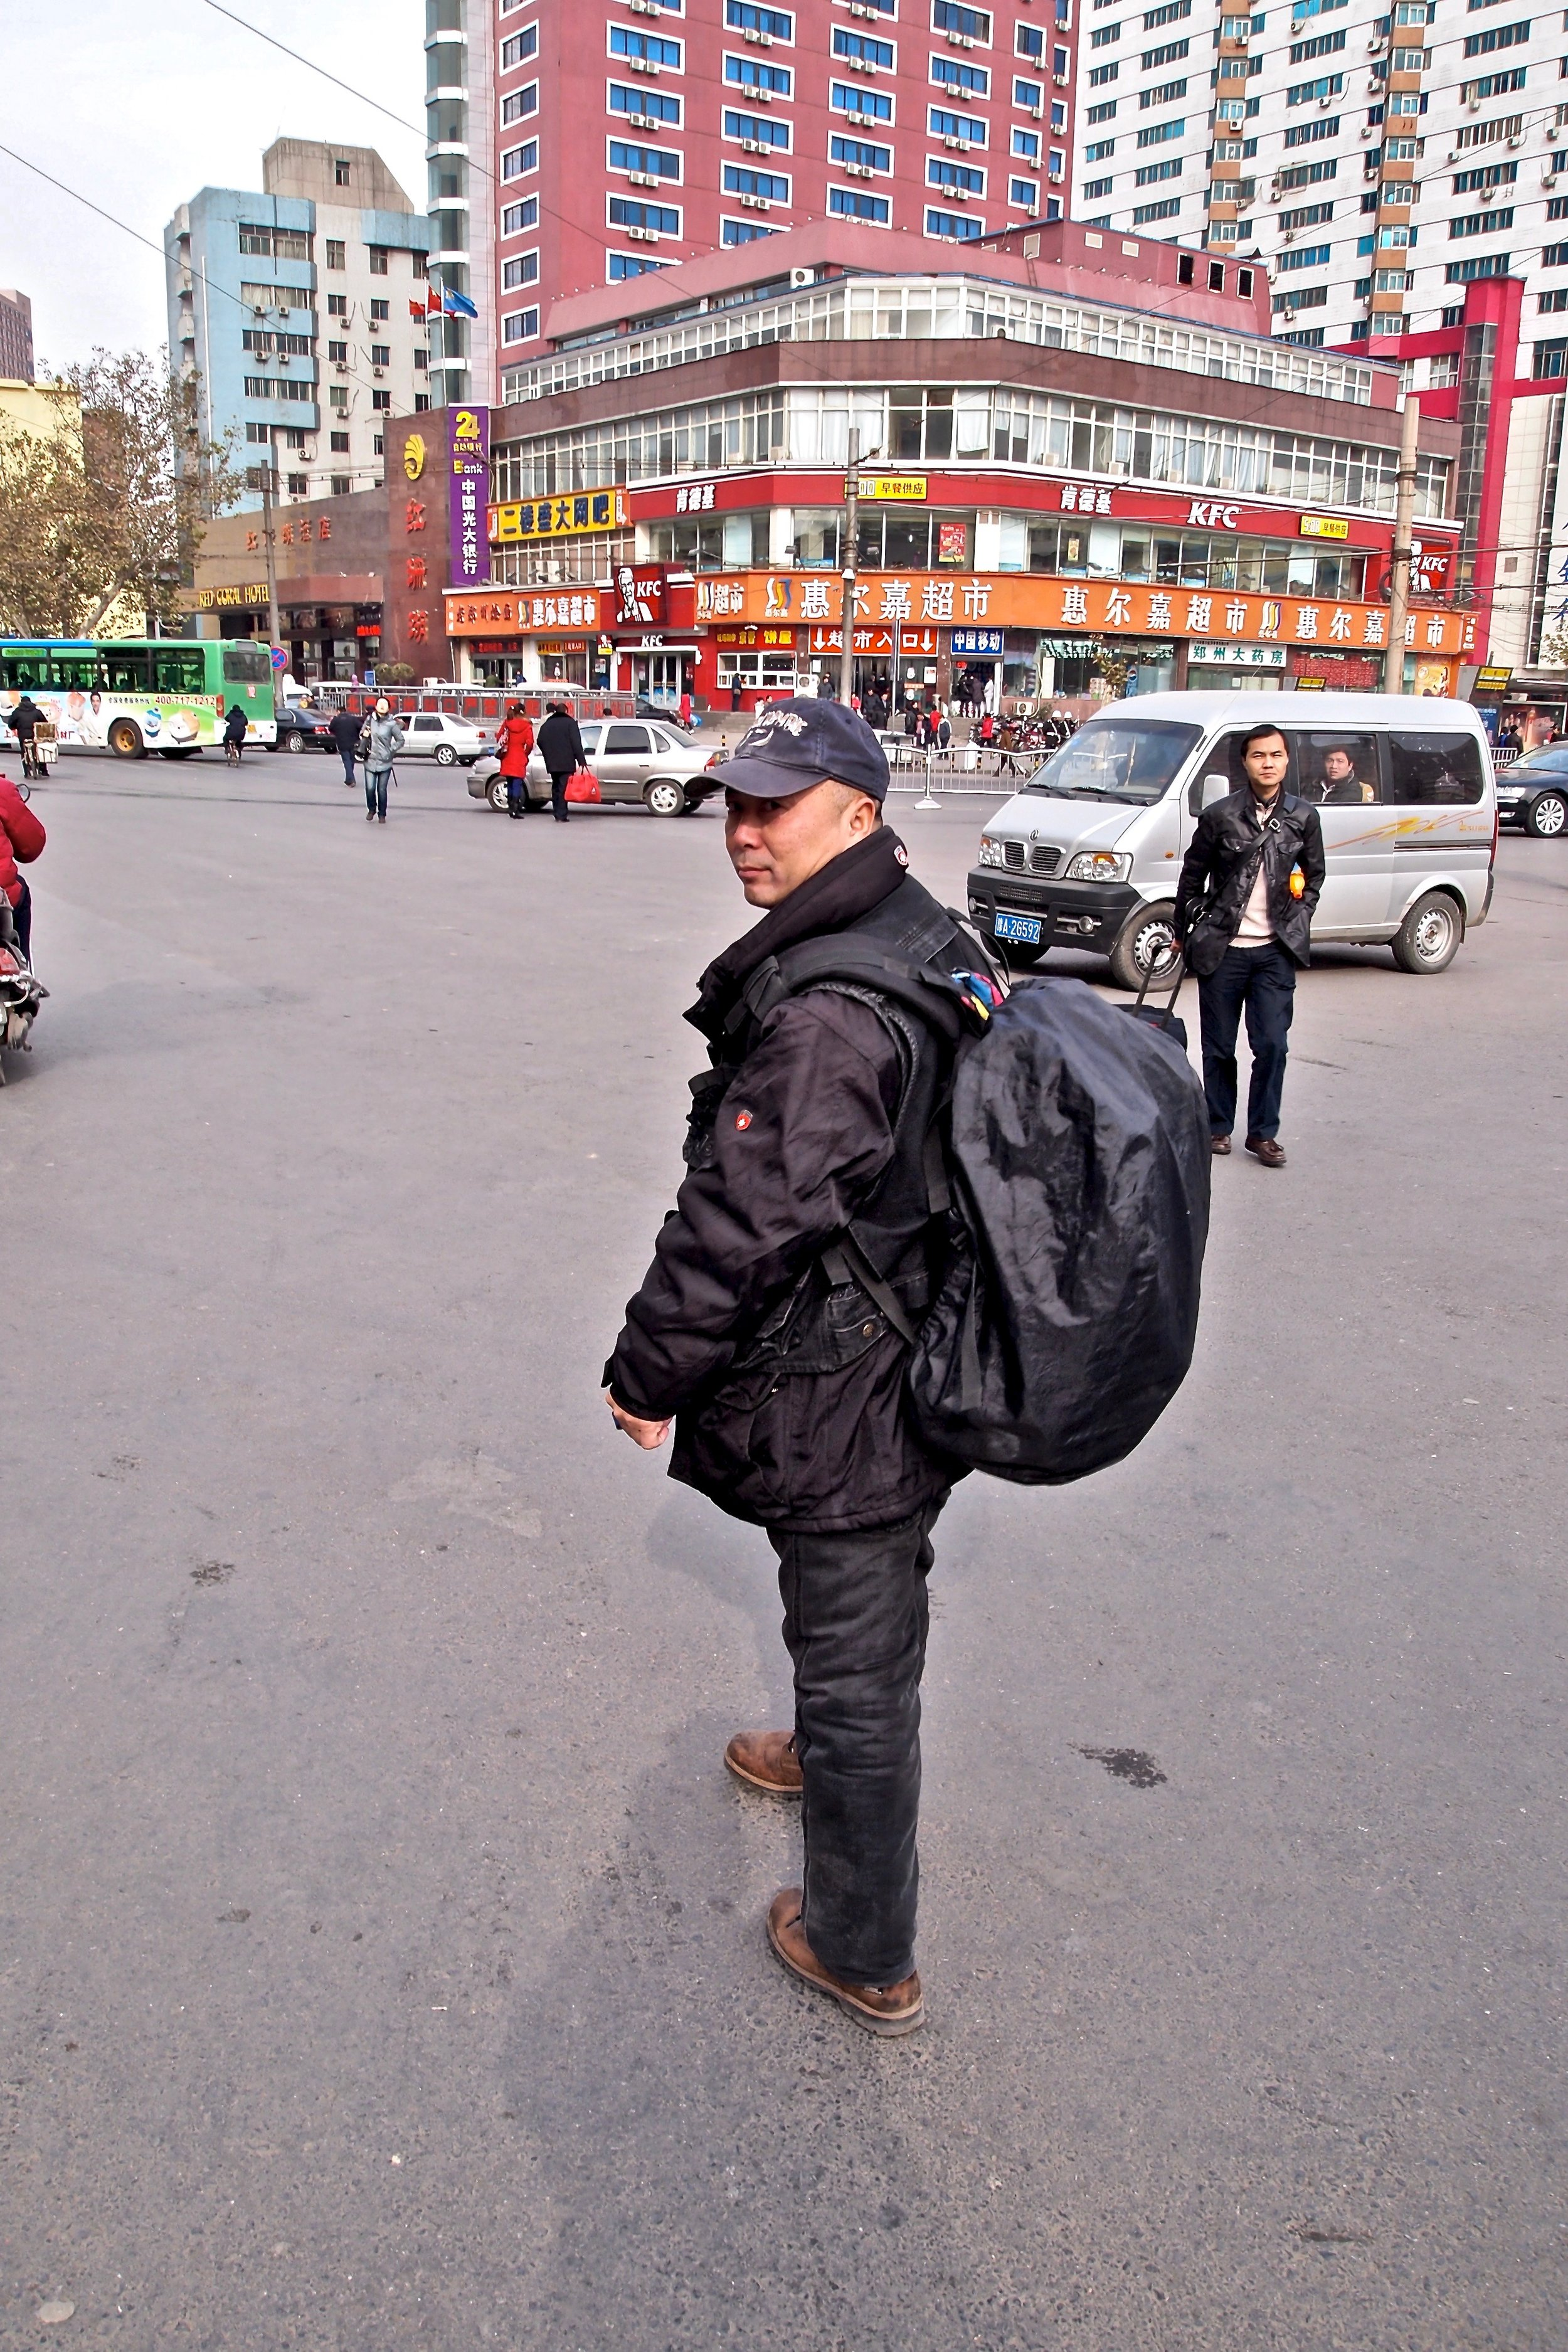 - Lu Jianfu films government vehicles violating traffic rules. It's how he fights rampant corruption, one sedan at a time.